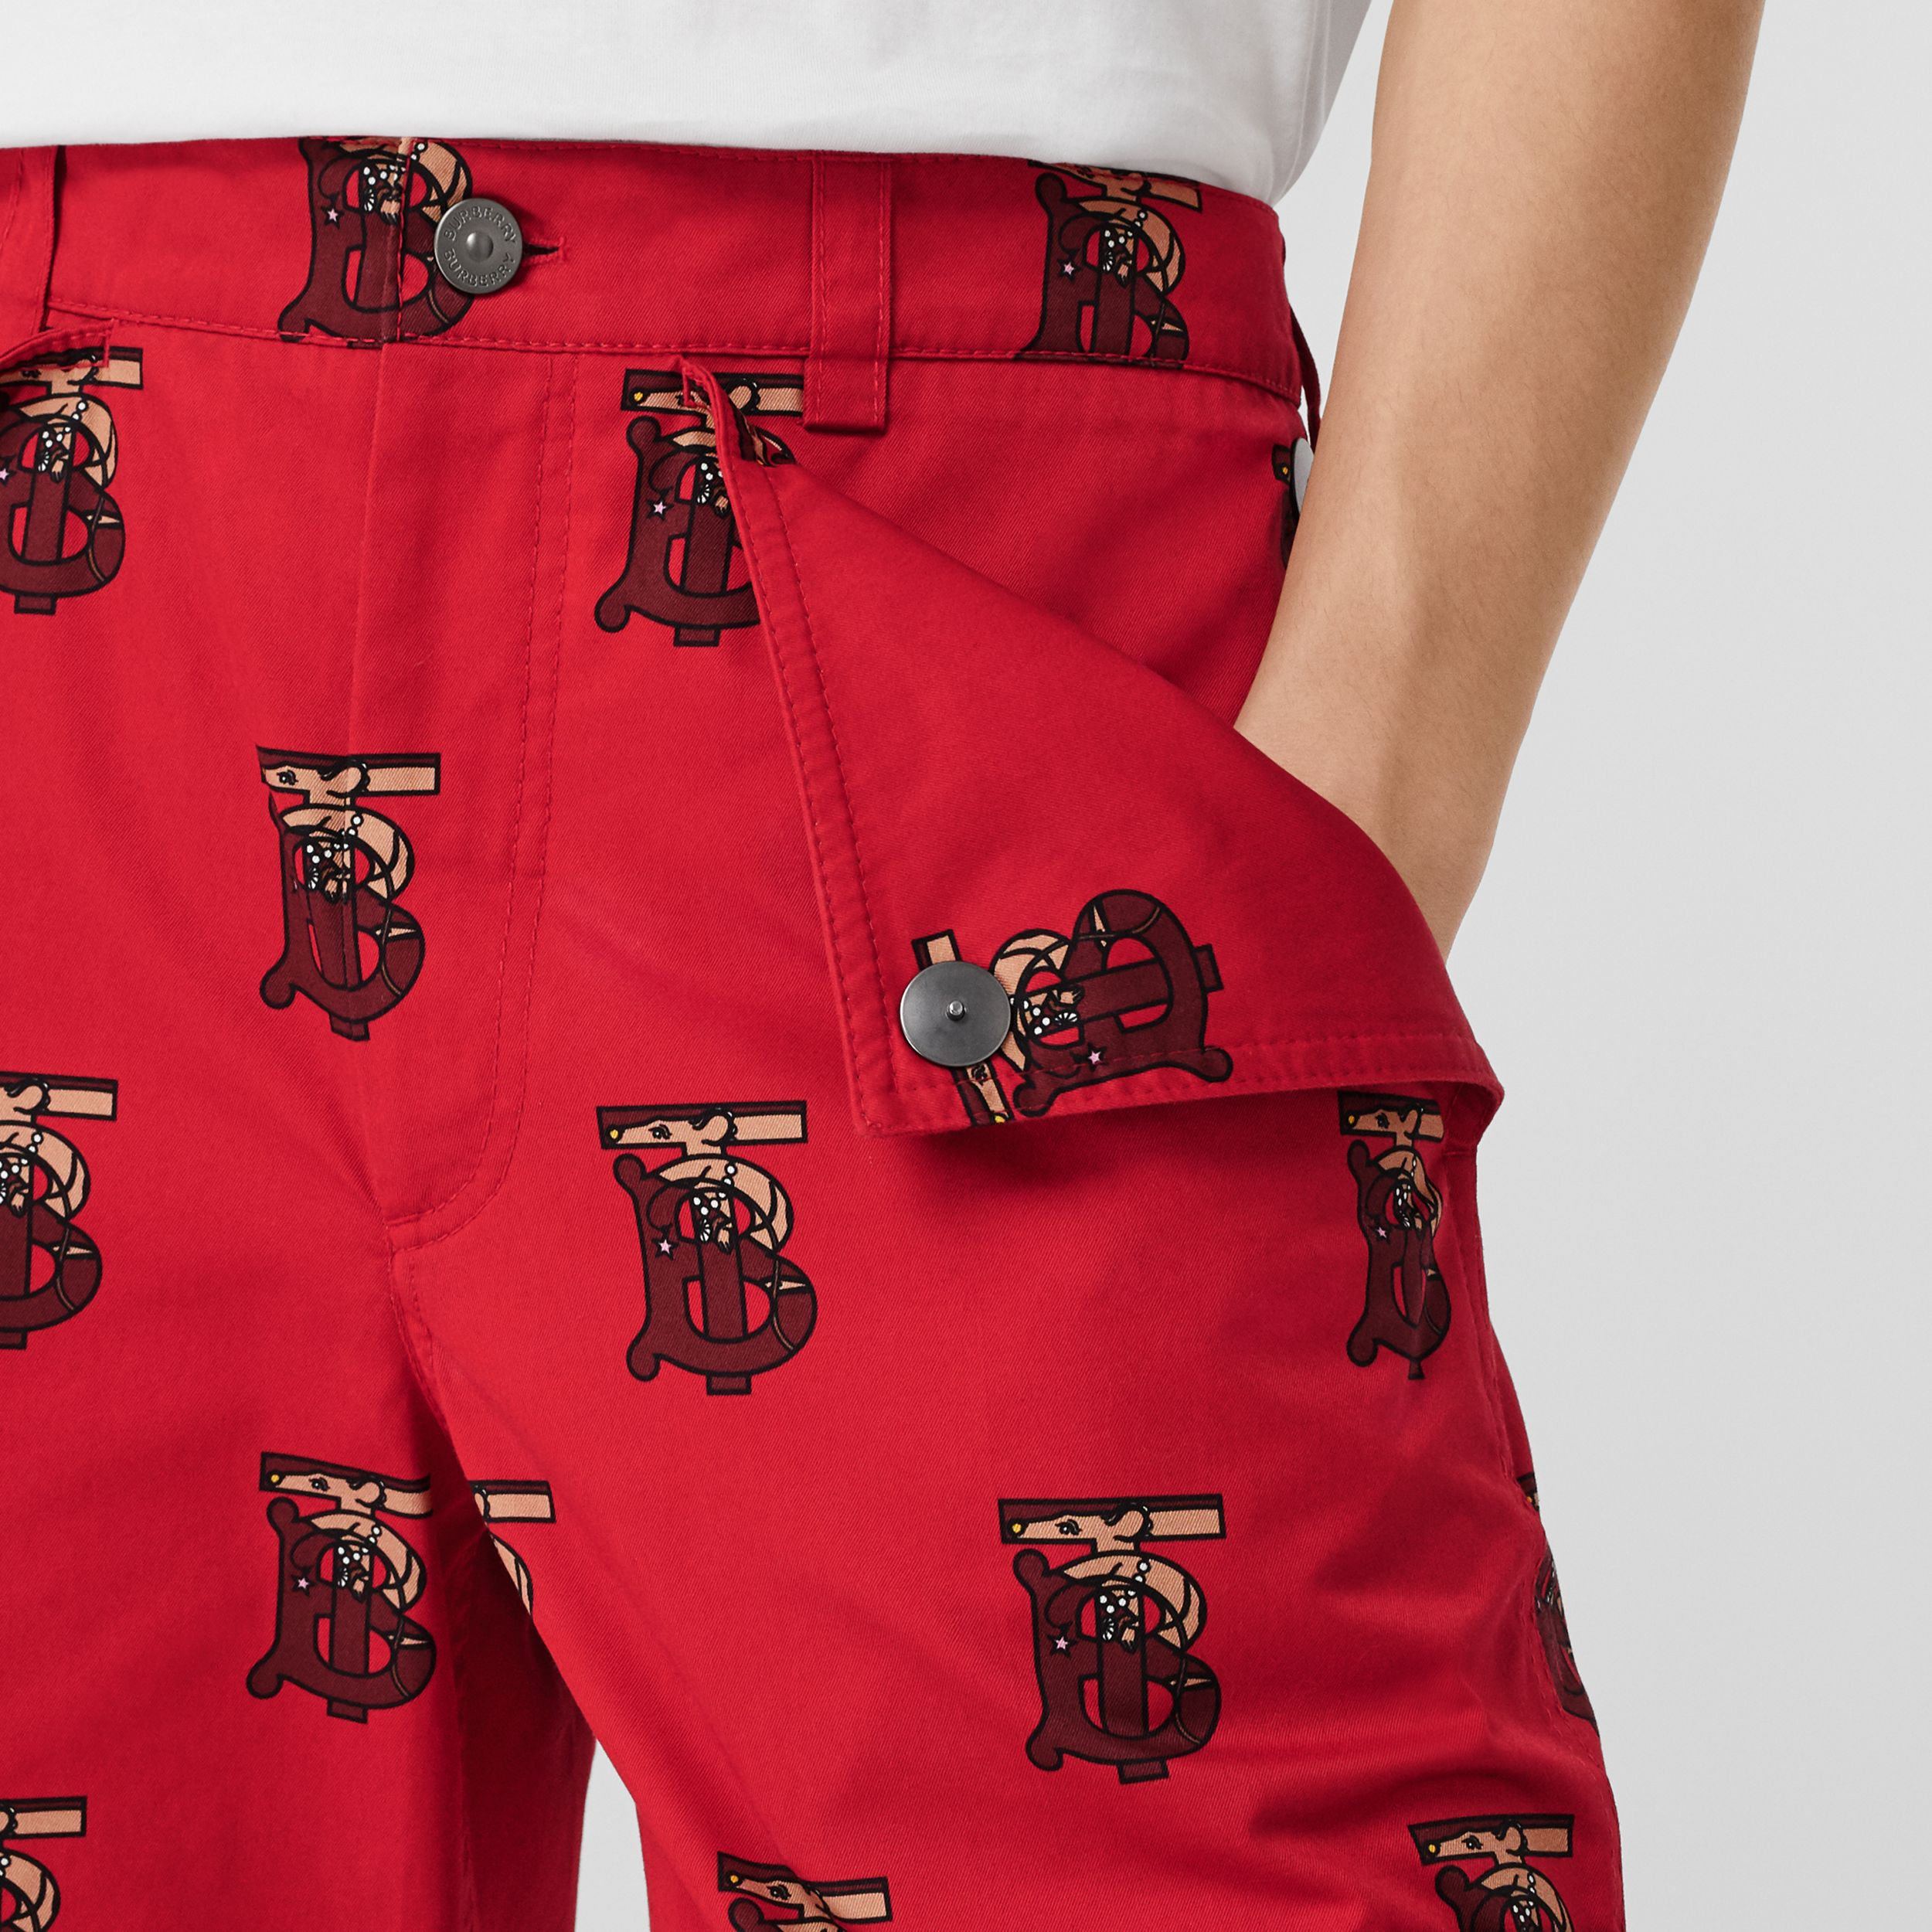 Monogram Motif Cotton Tailored Shorts in Bright Red - Men | Burberry United States - 2